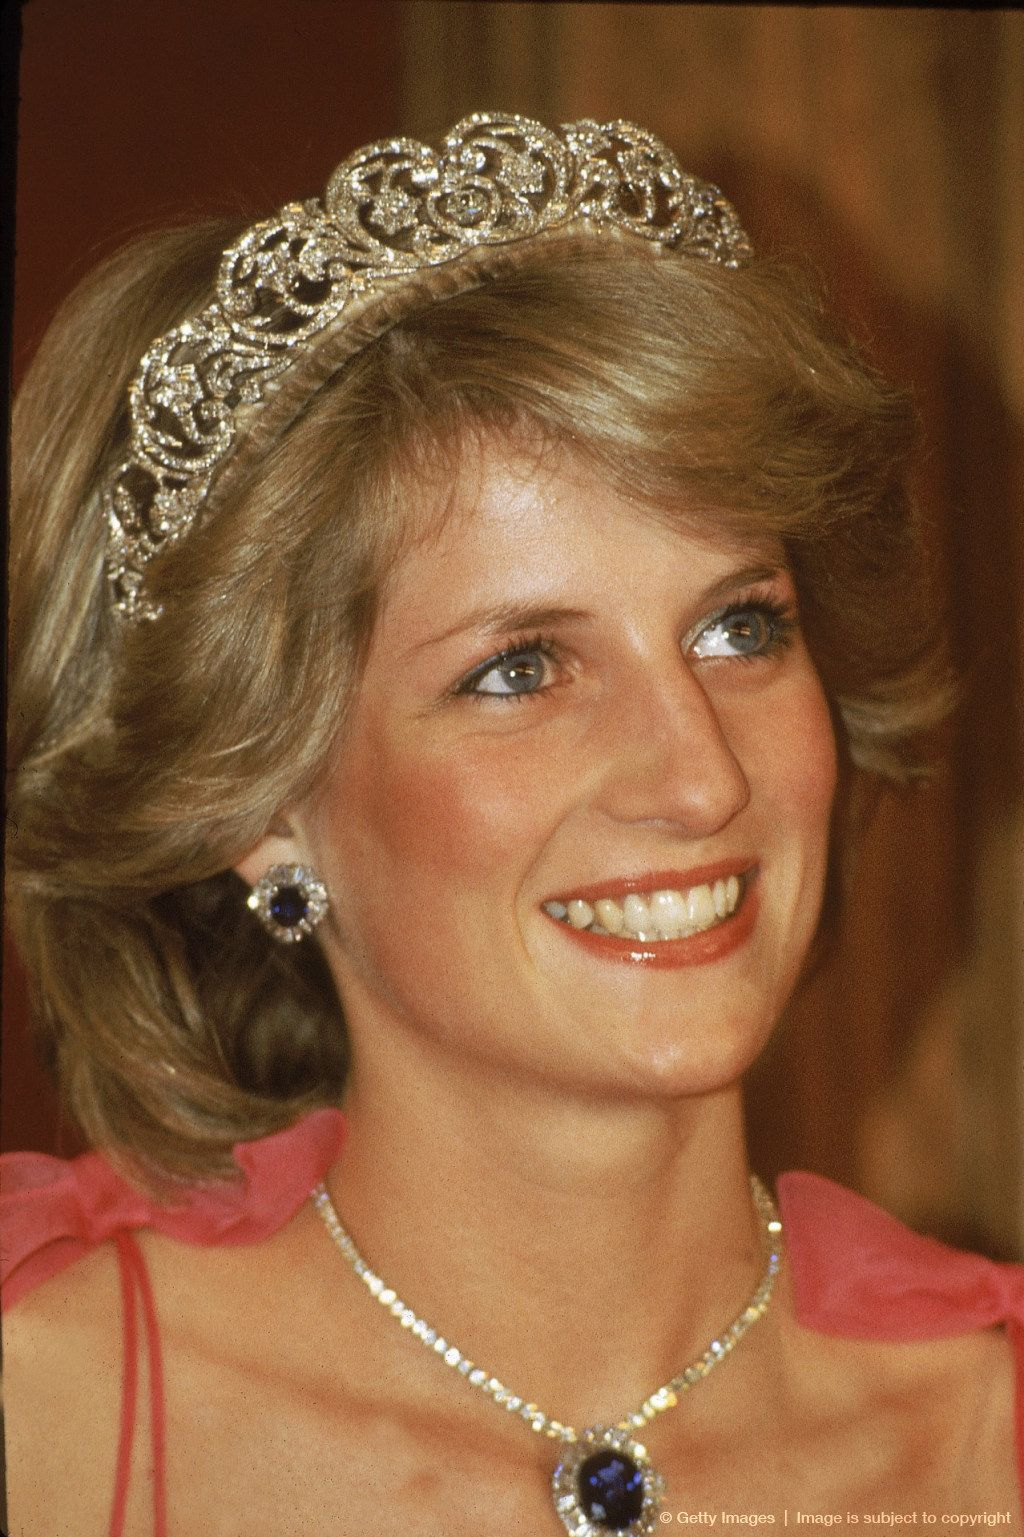 Image detail for -BRISBANE, AUSTRALIA - APRIL 11: Princess Diana wears the Spencer Family diamond Tiara, with a suite of sapphire and diamond jewellery - including a pendant & matching earrings - given as a gift by the Crown Prince of Saudi Arabia at a State Reception on April 11, 1983 in Brisbane, Australia.